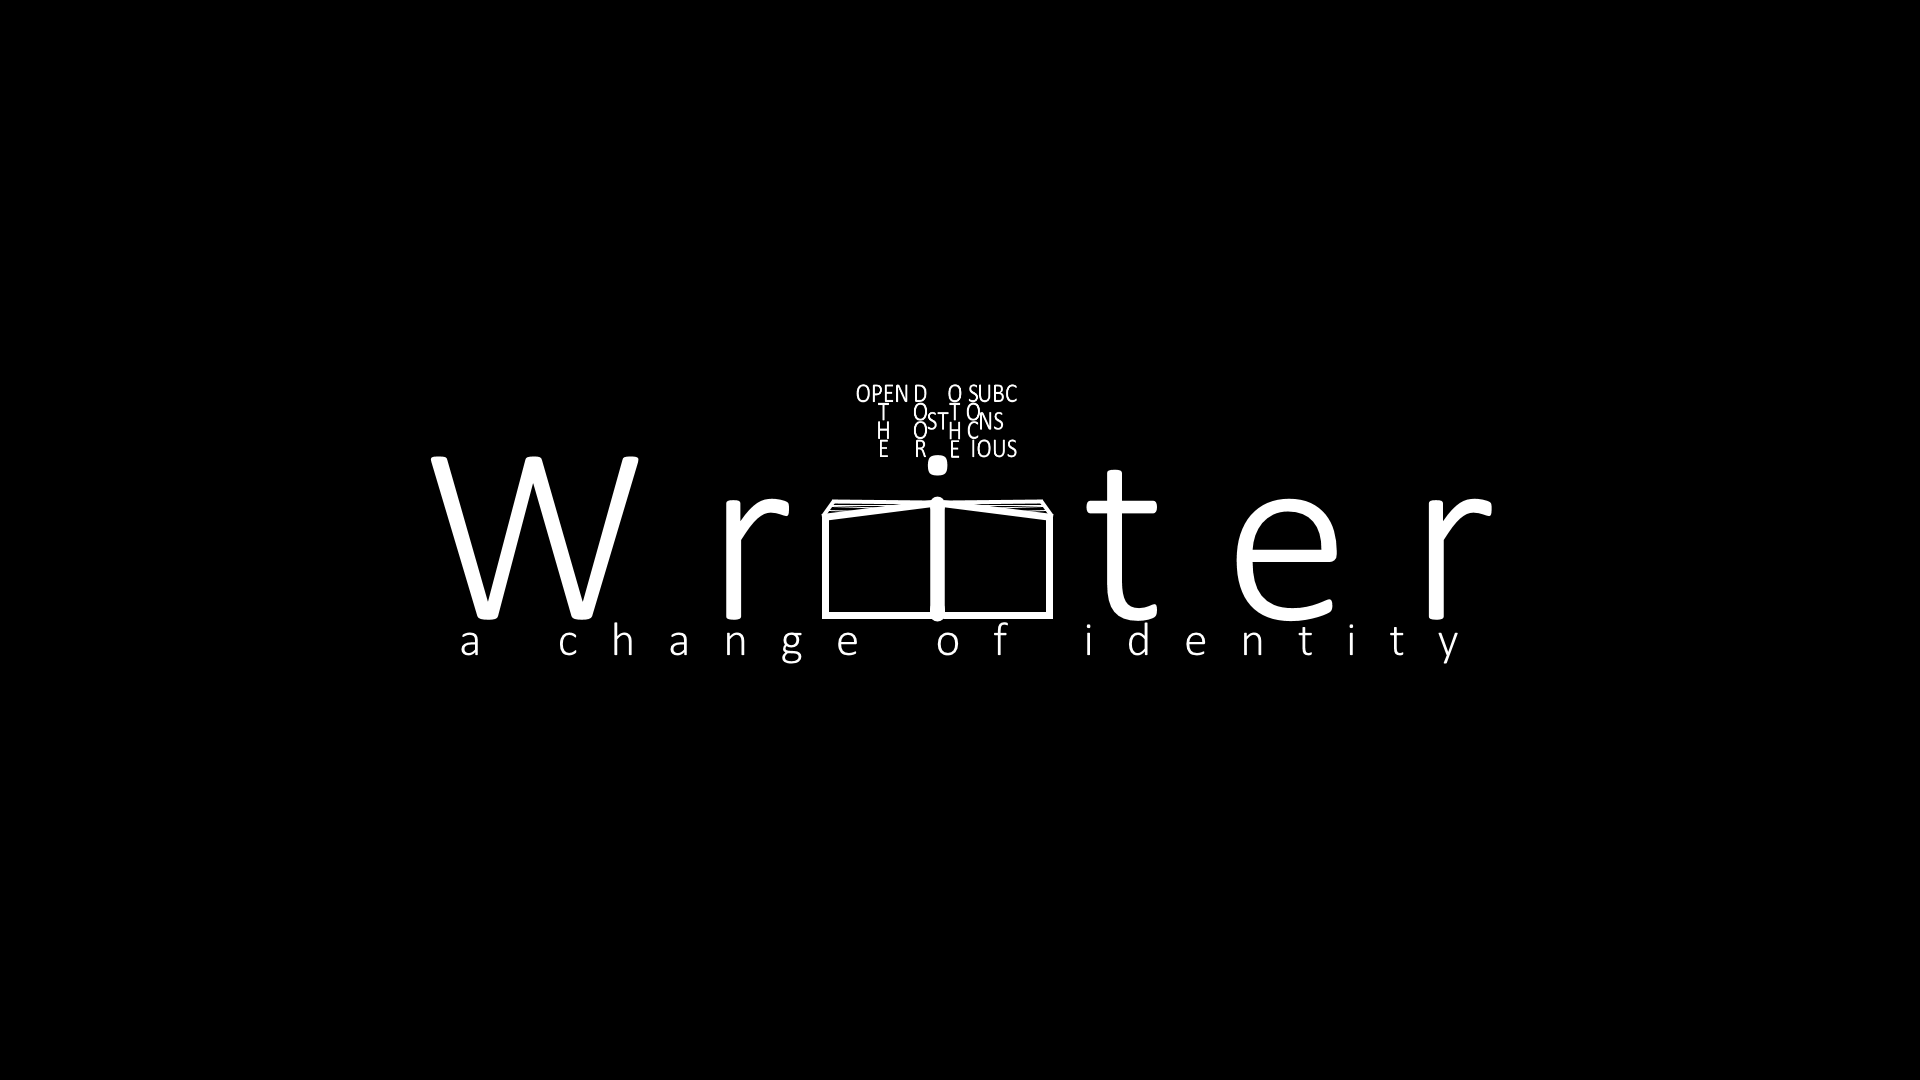 The Writer 2016 03 18 20 35 29 4 1